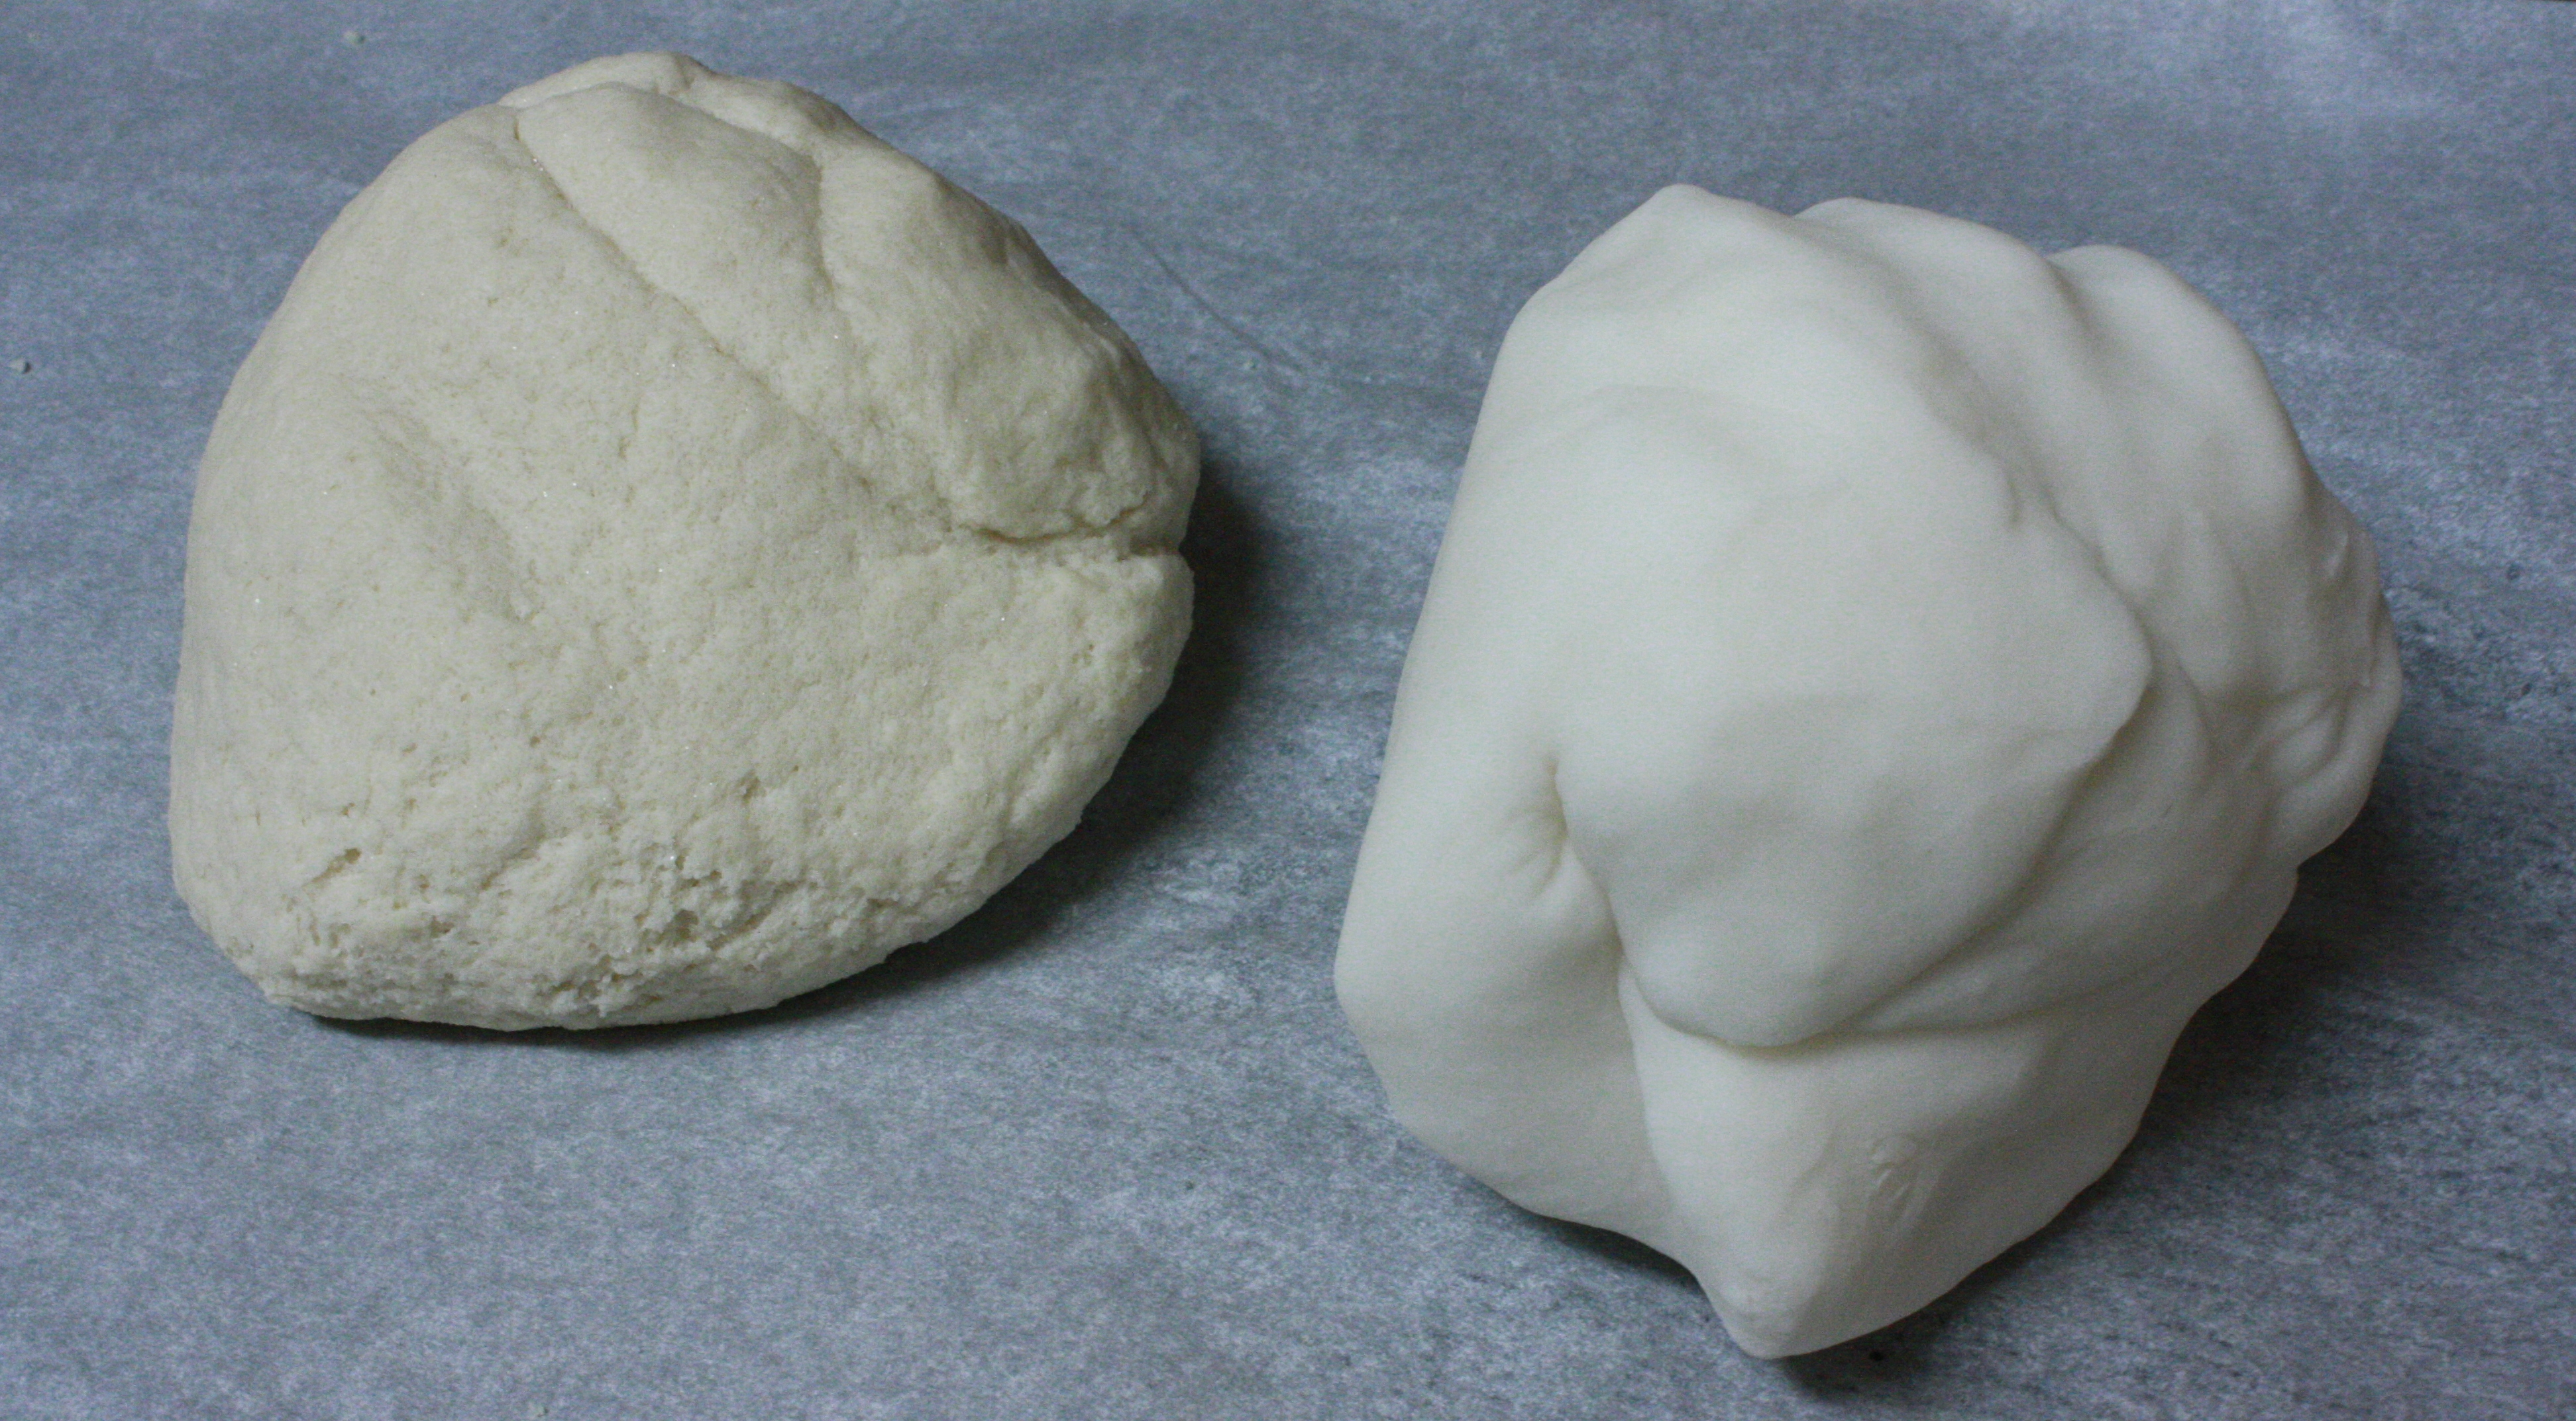 Salt dough vs cornstarch clay thelifeoflulubelle for Pizza in a mug without baking soda